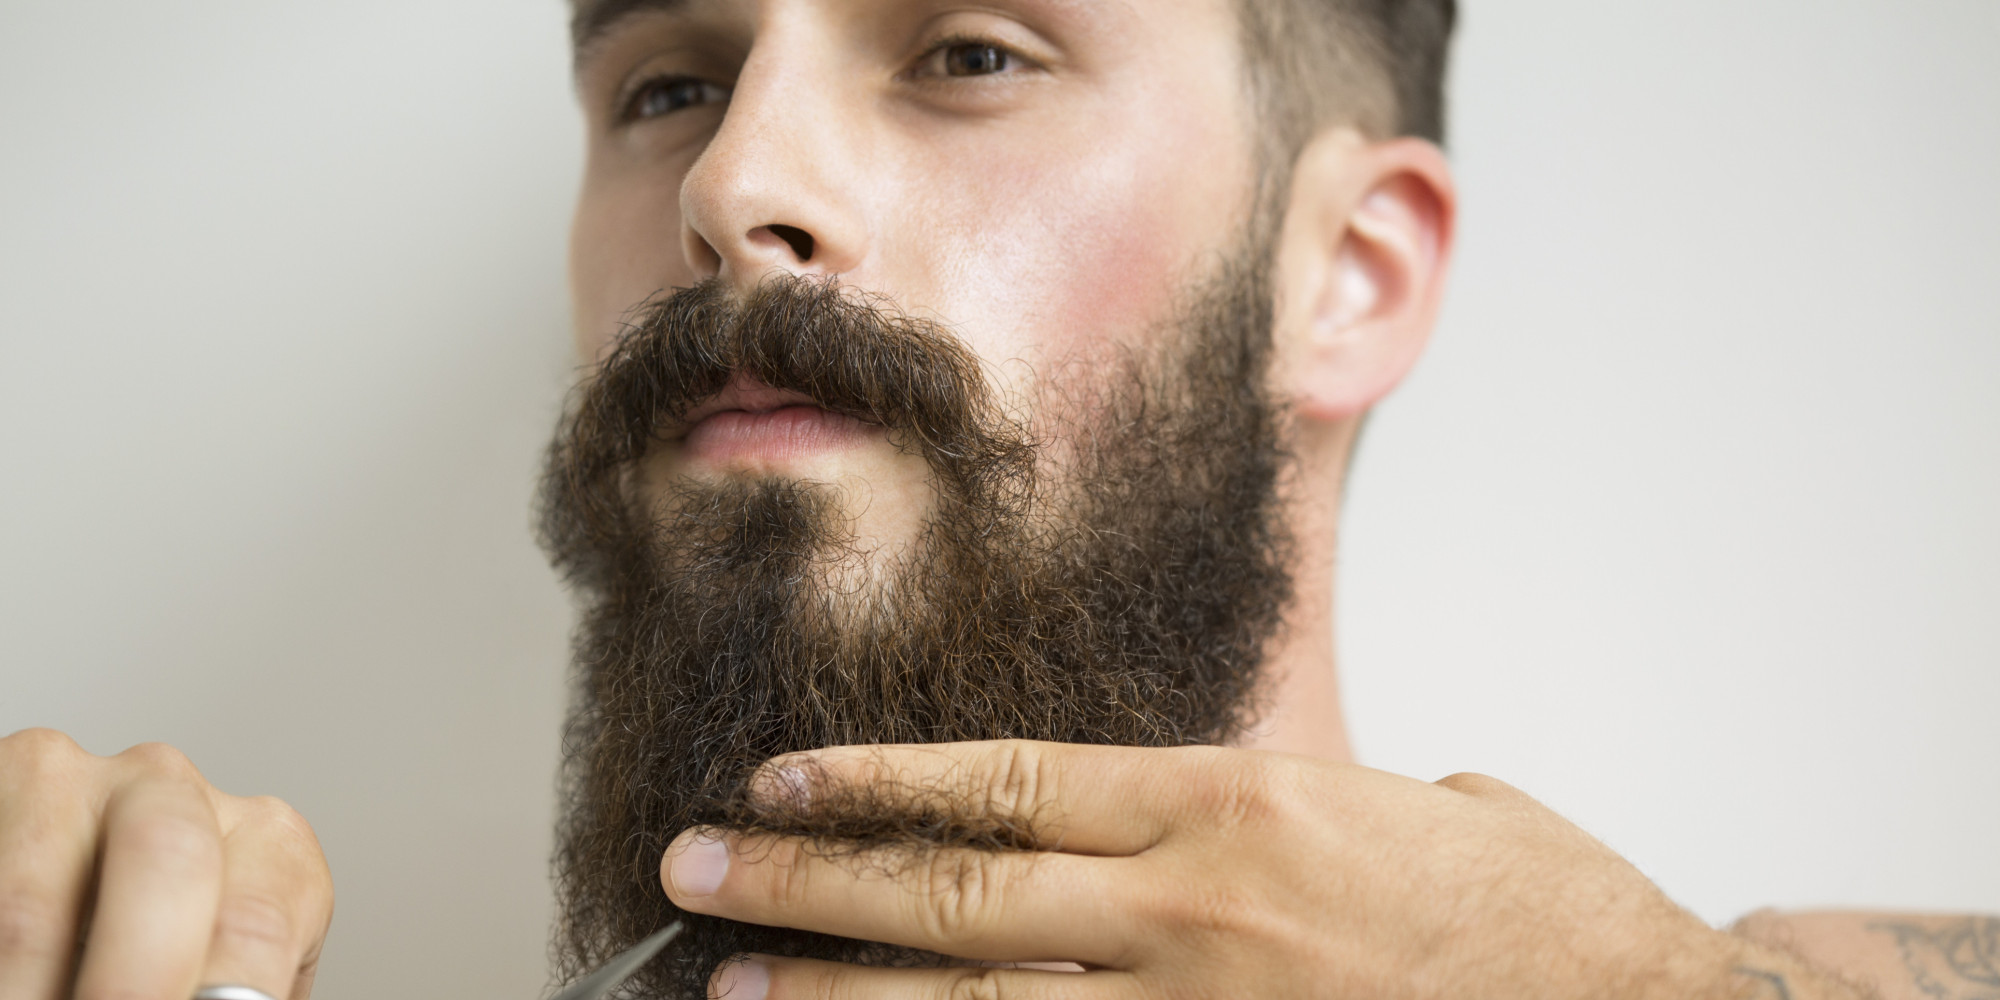 http://www.huffingtonpost.com/2015/01/08/lumbersexuality-masculinity_n_6430466.html?utm_hp_ref=style&ir=Style